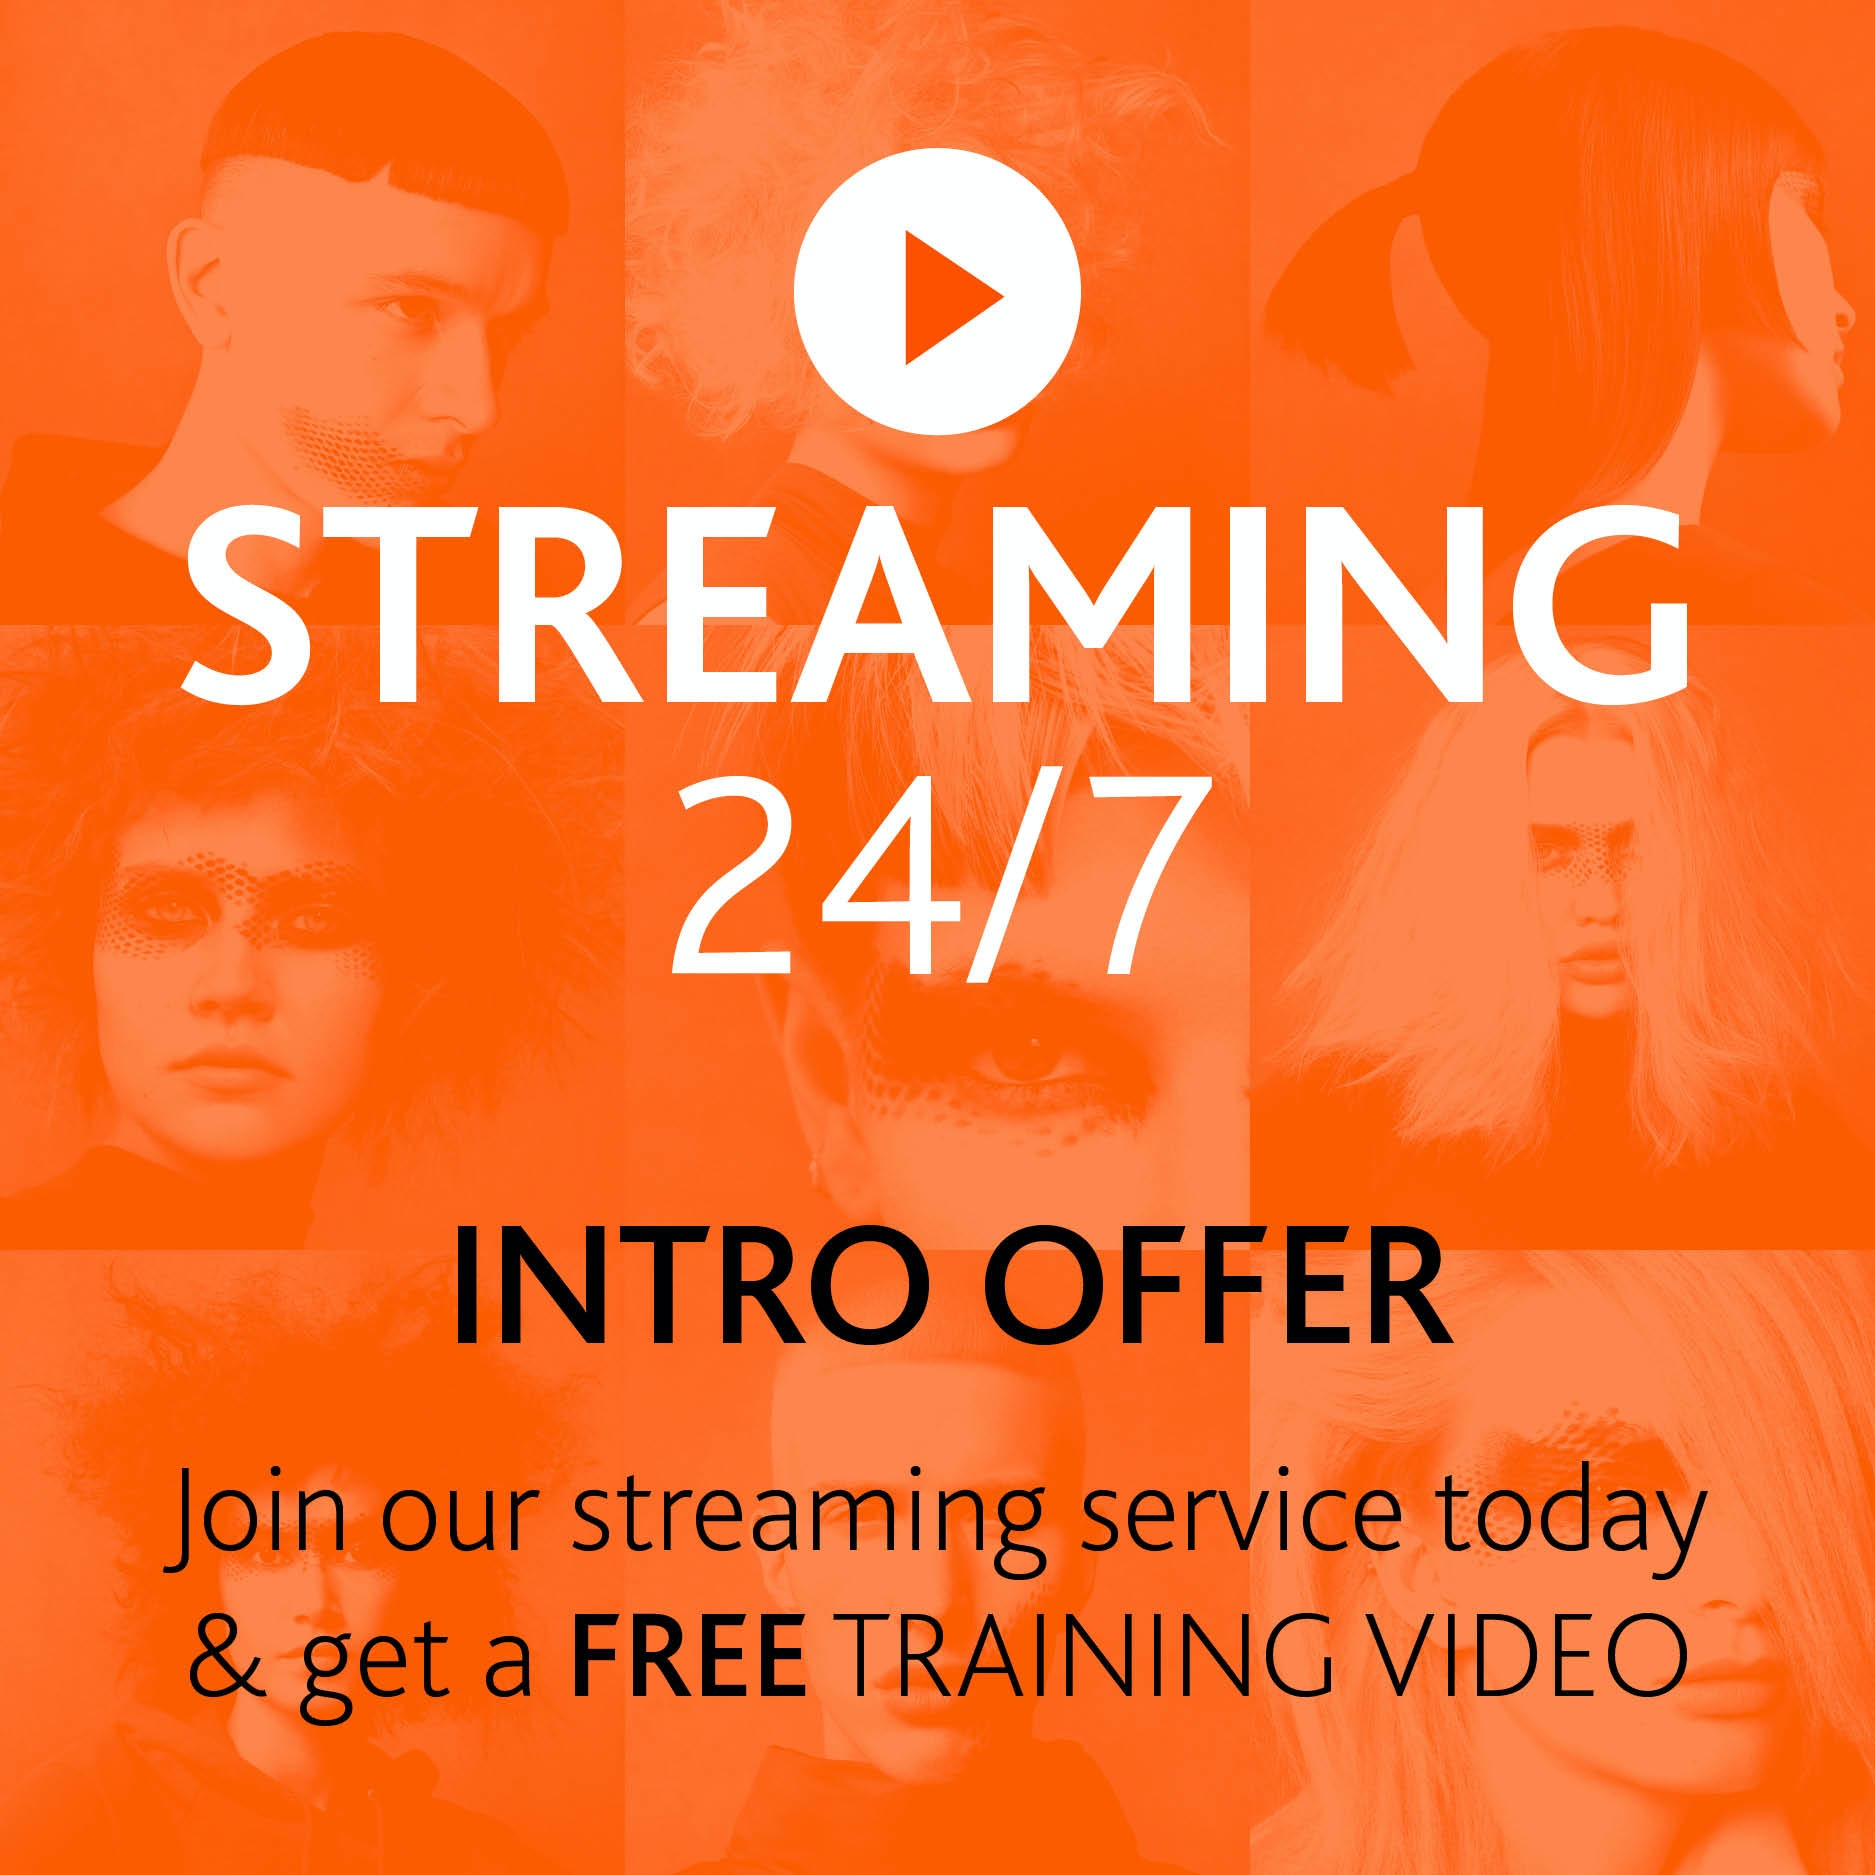 STREAMING 24/7